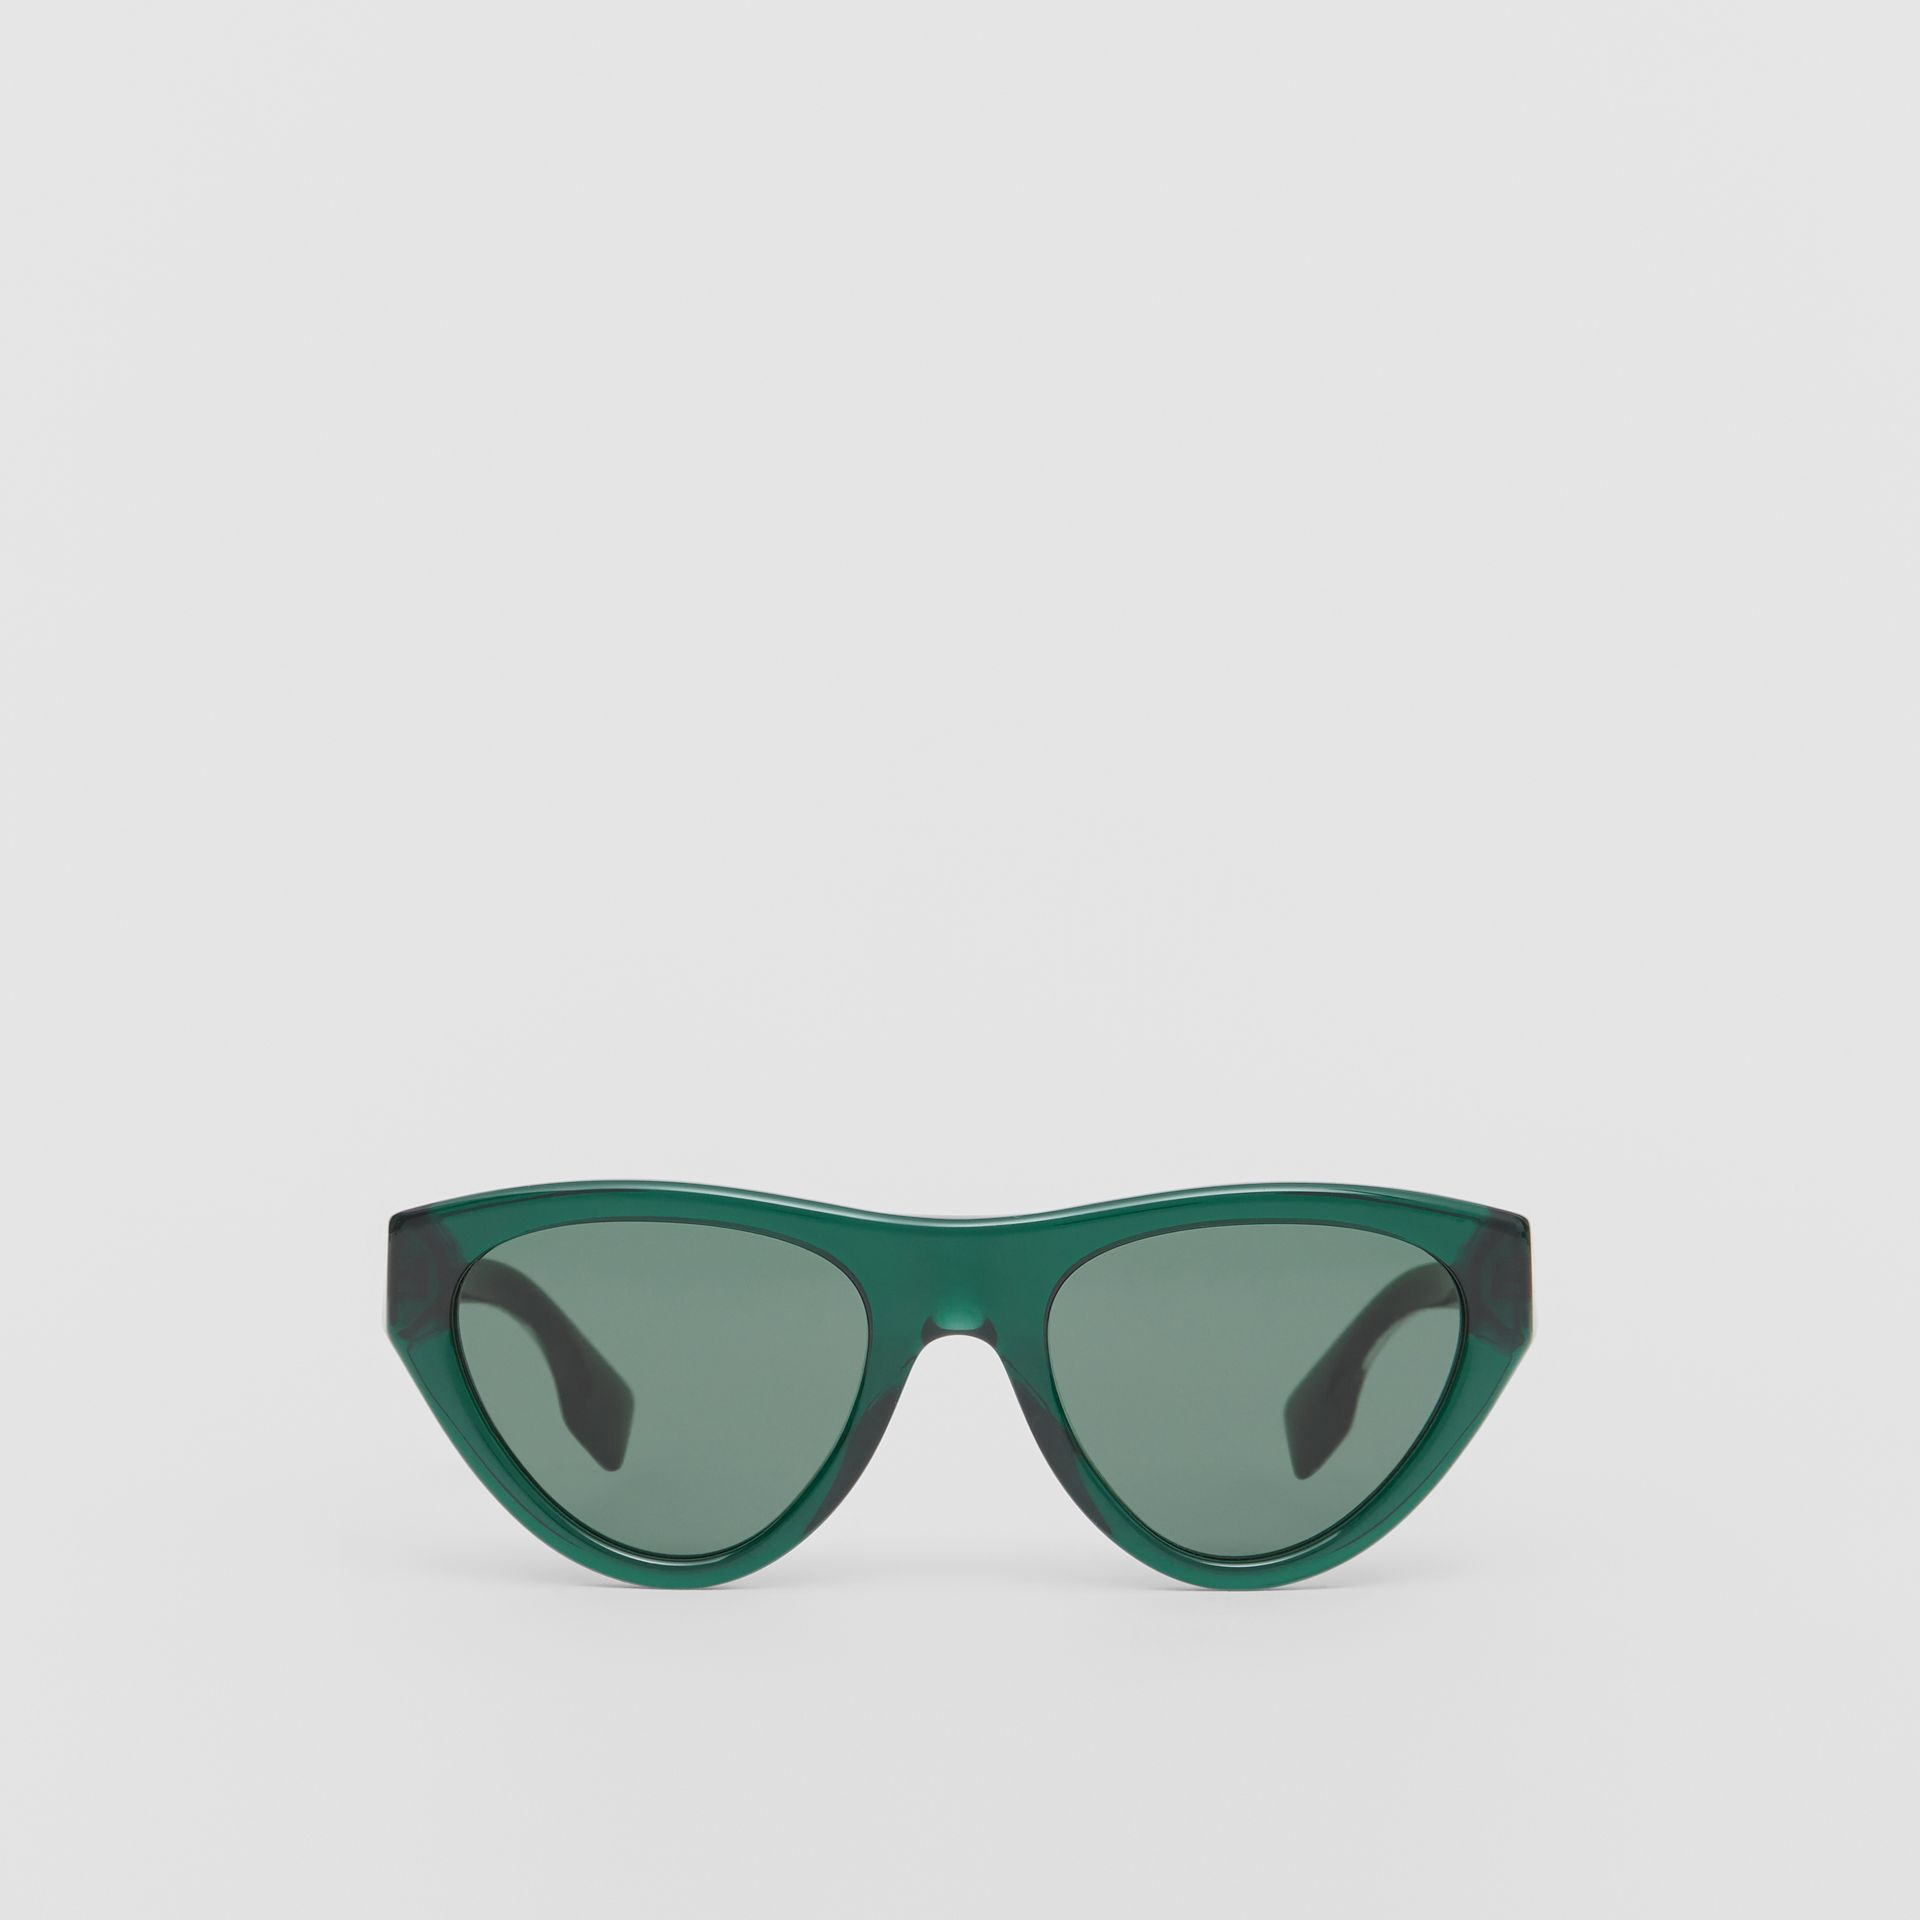 Triangular Frame Sunglasses in Green - Women | Burberry Canada - gallery image 0